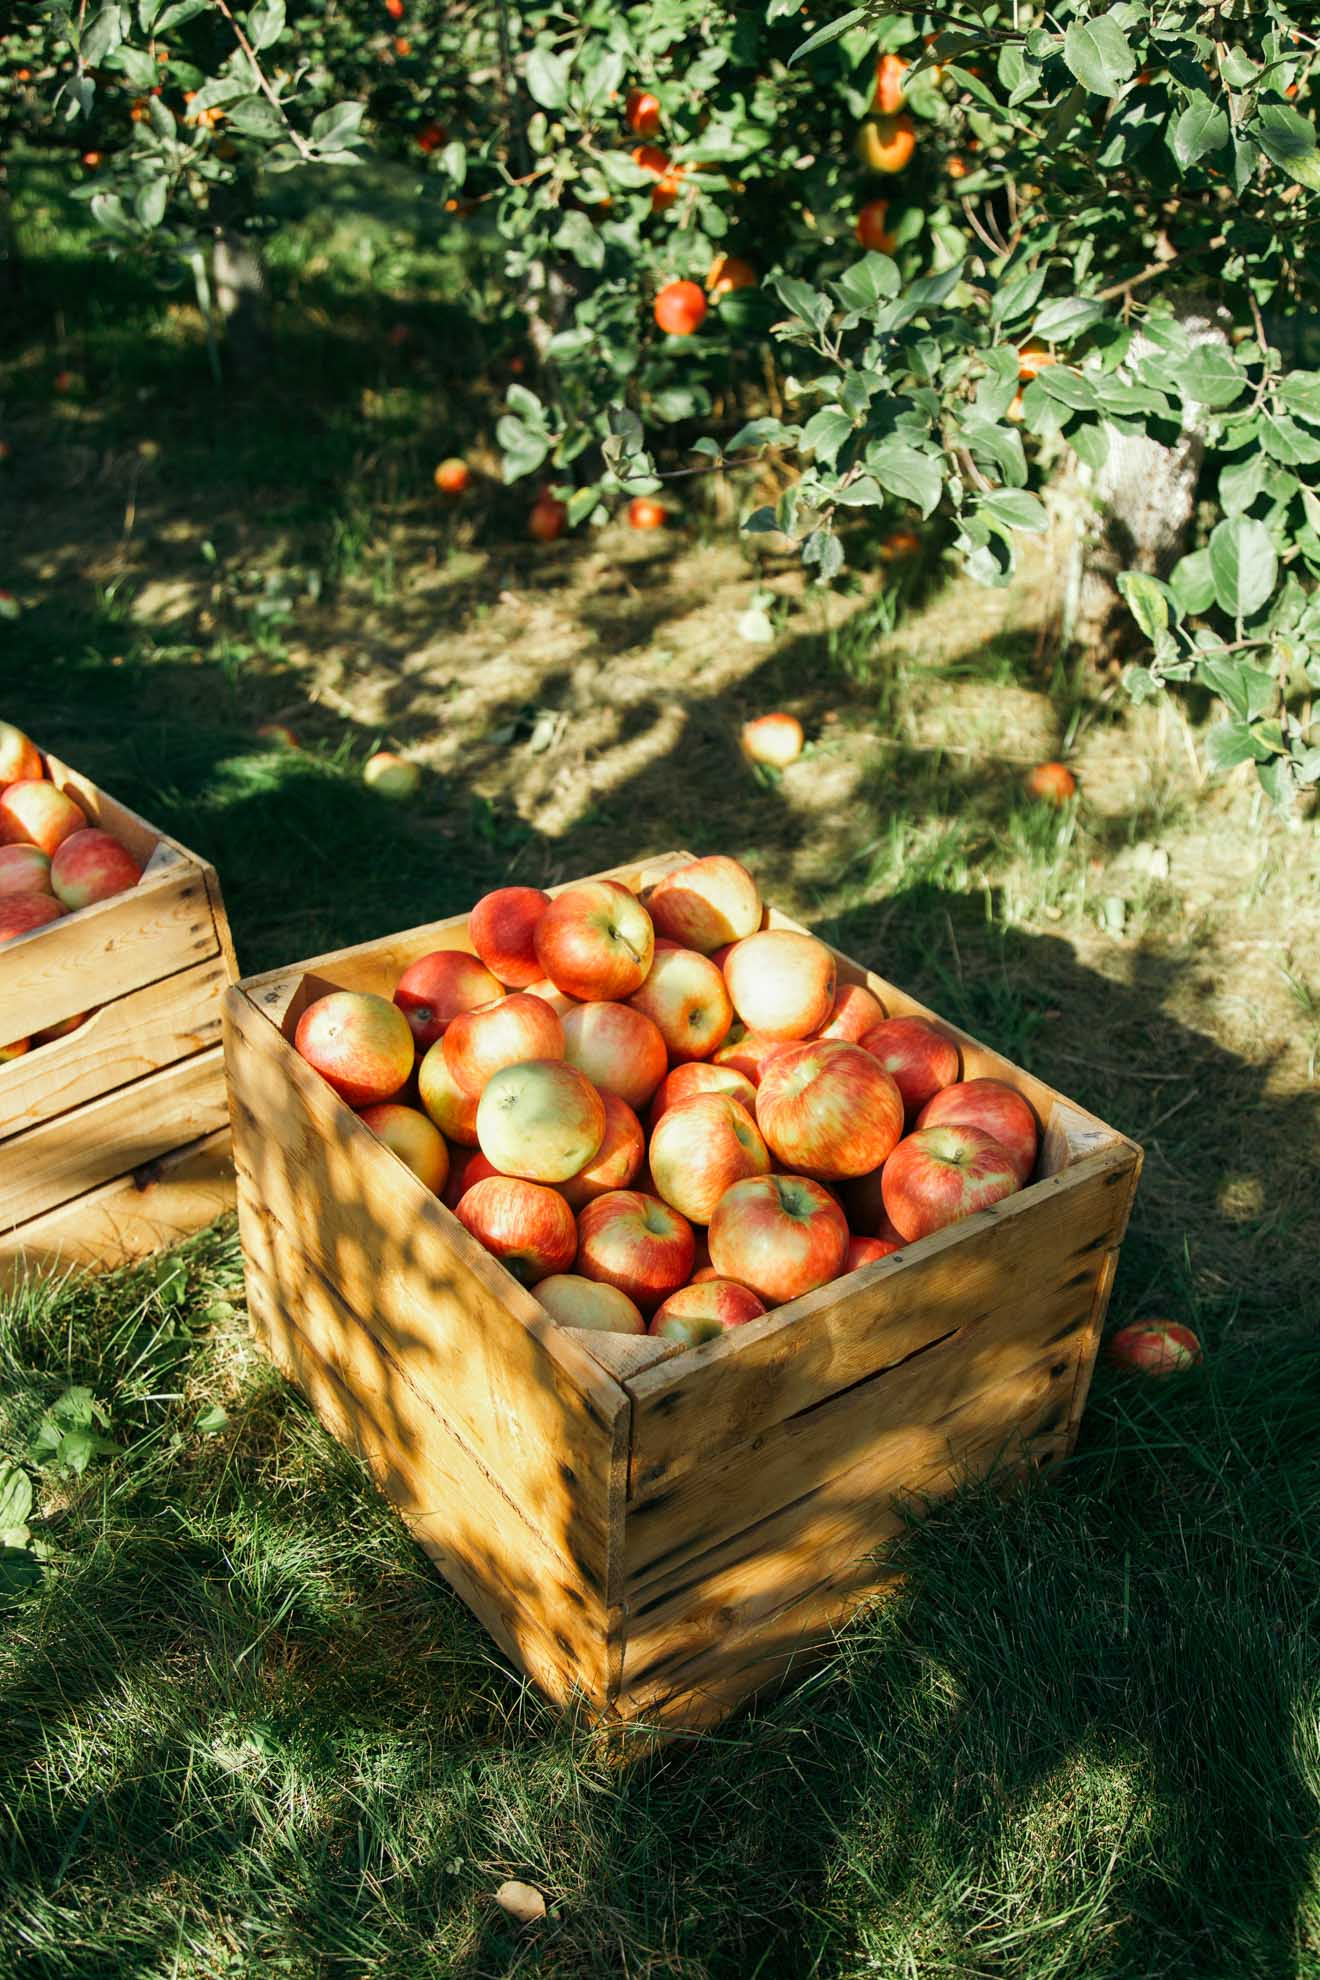 apples in wooden crate